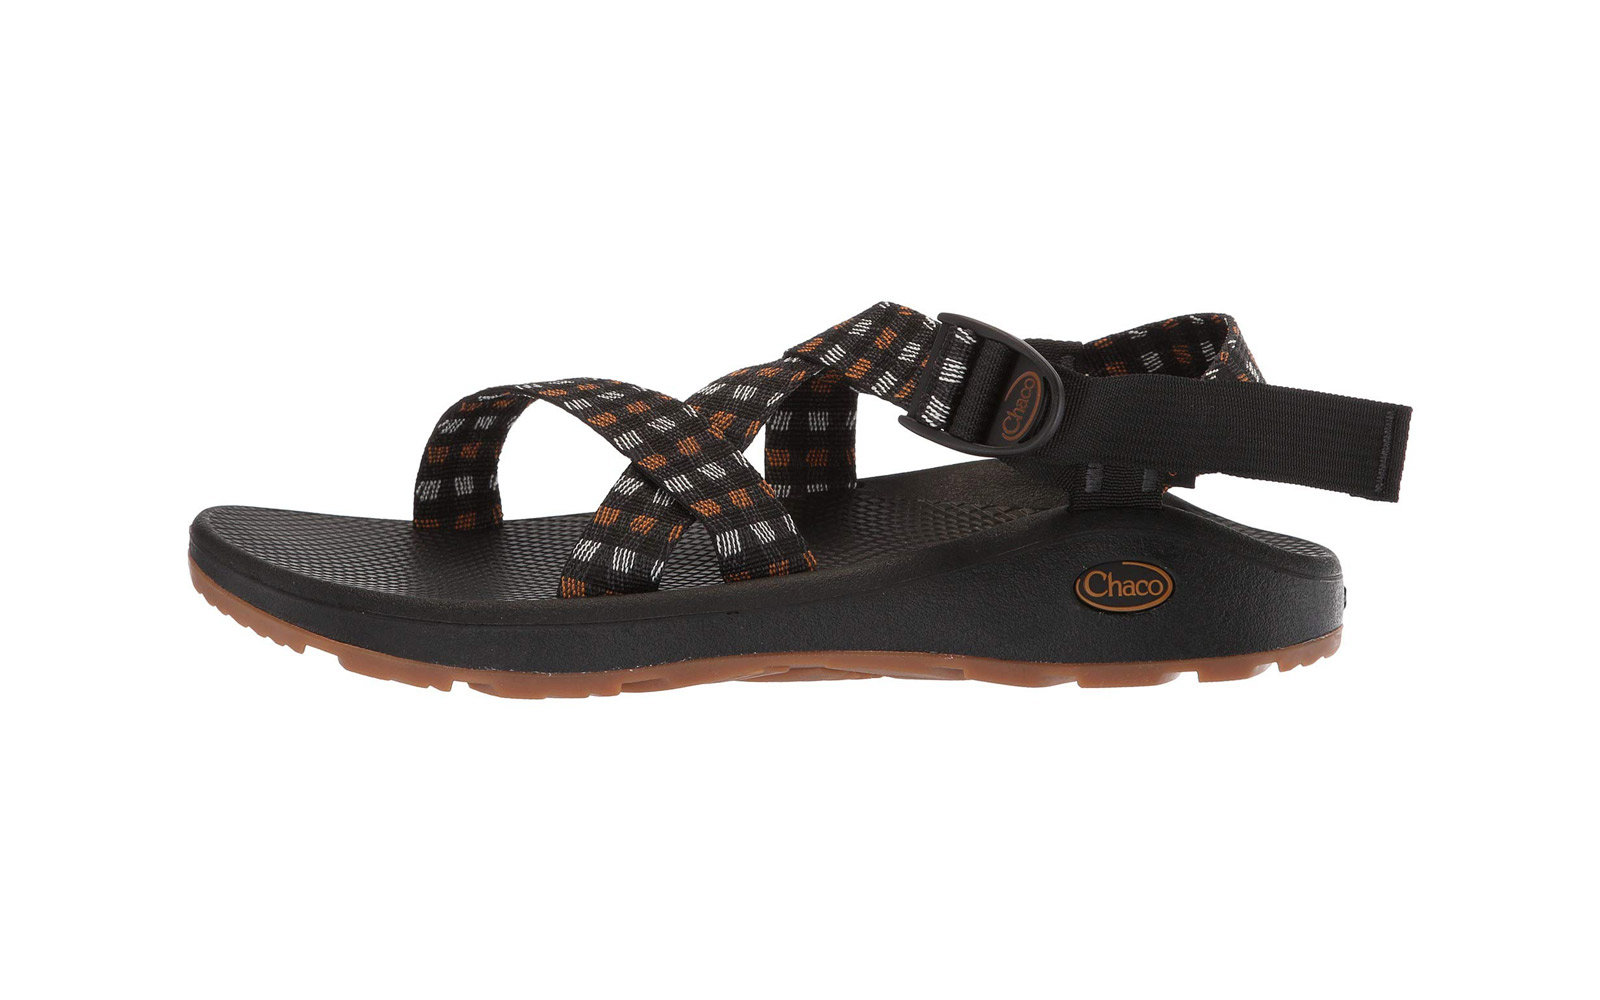 985fa4473bbeaa The Best Men s Sandals to Pack for Your Next Vacation